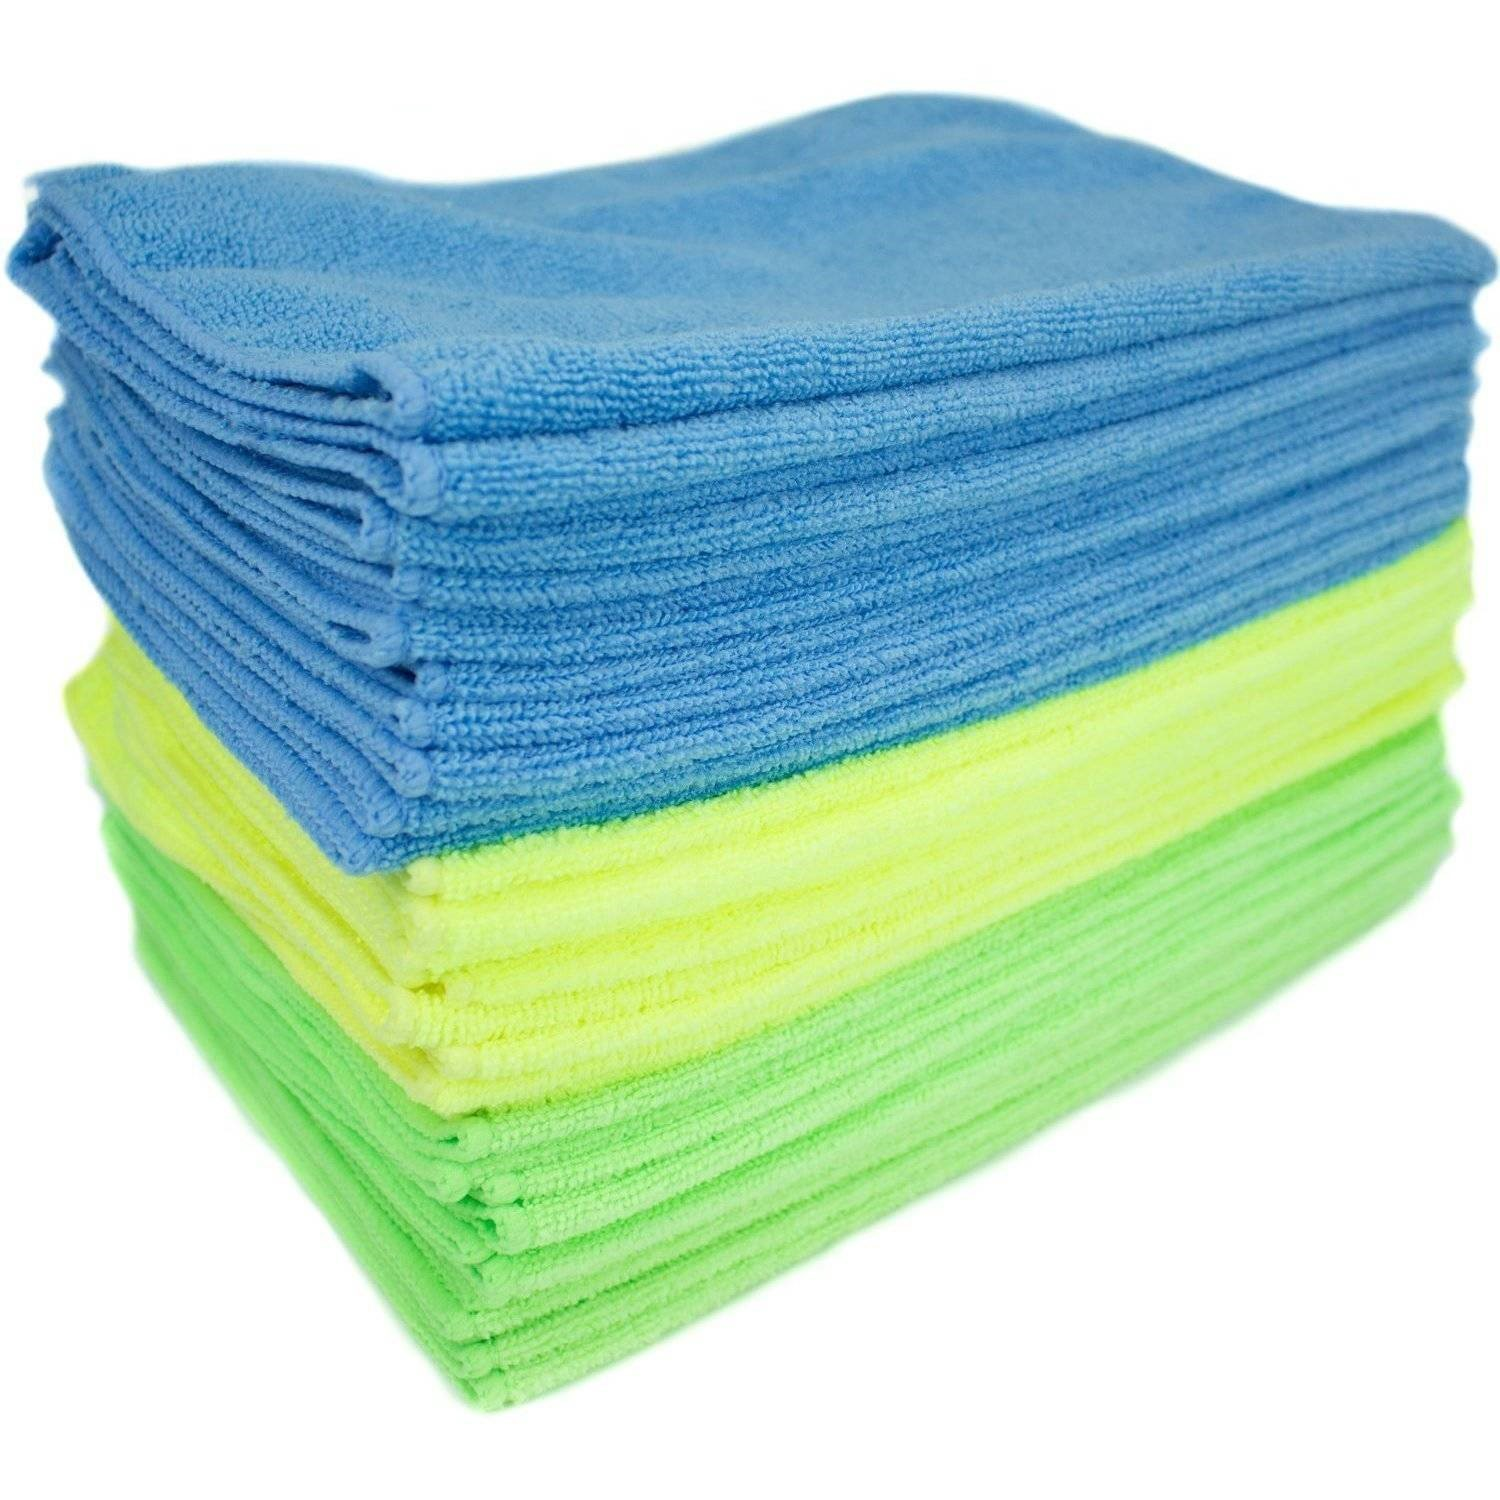 Zwipes Microfiber Cleaning Cloths, Multicolor (Pack of 12)